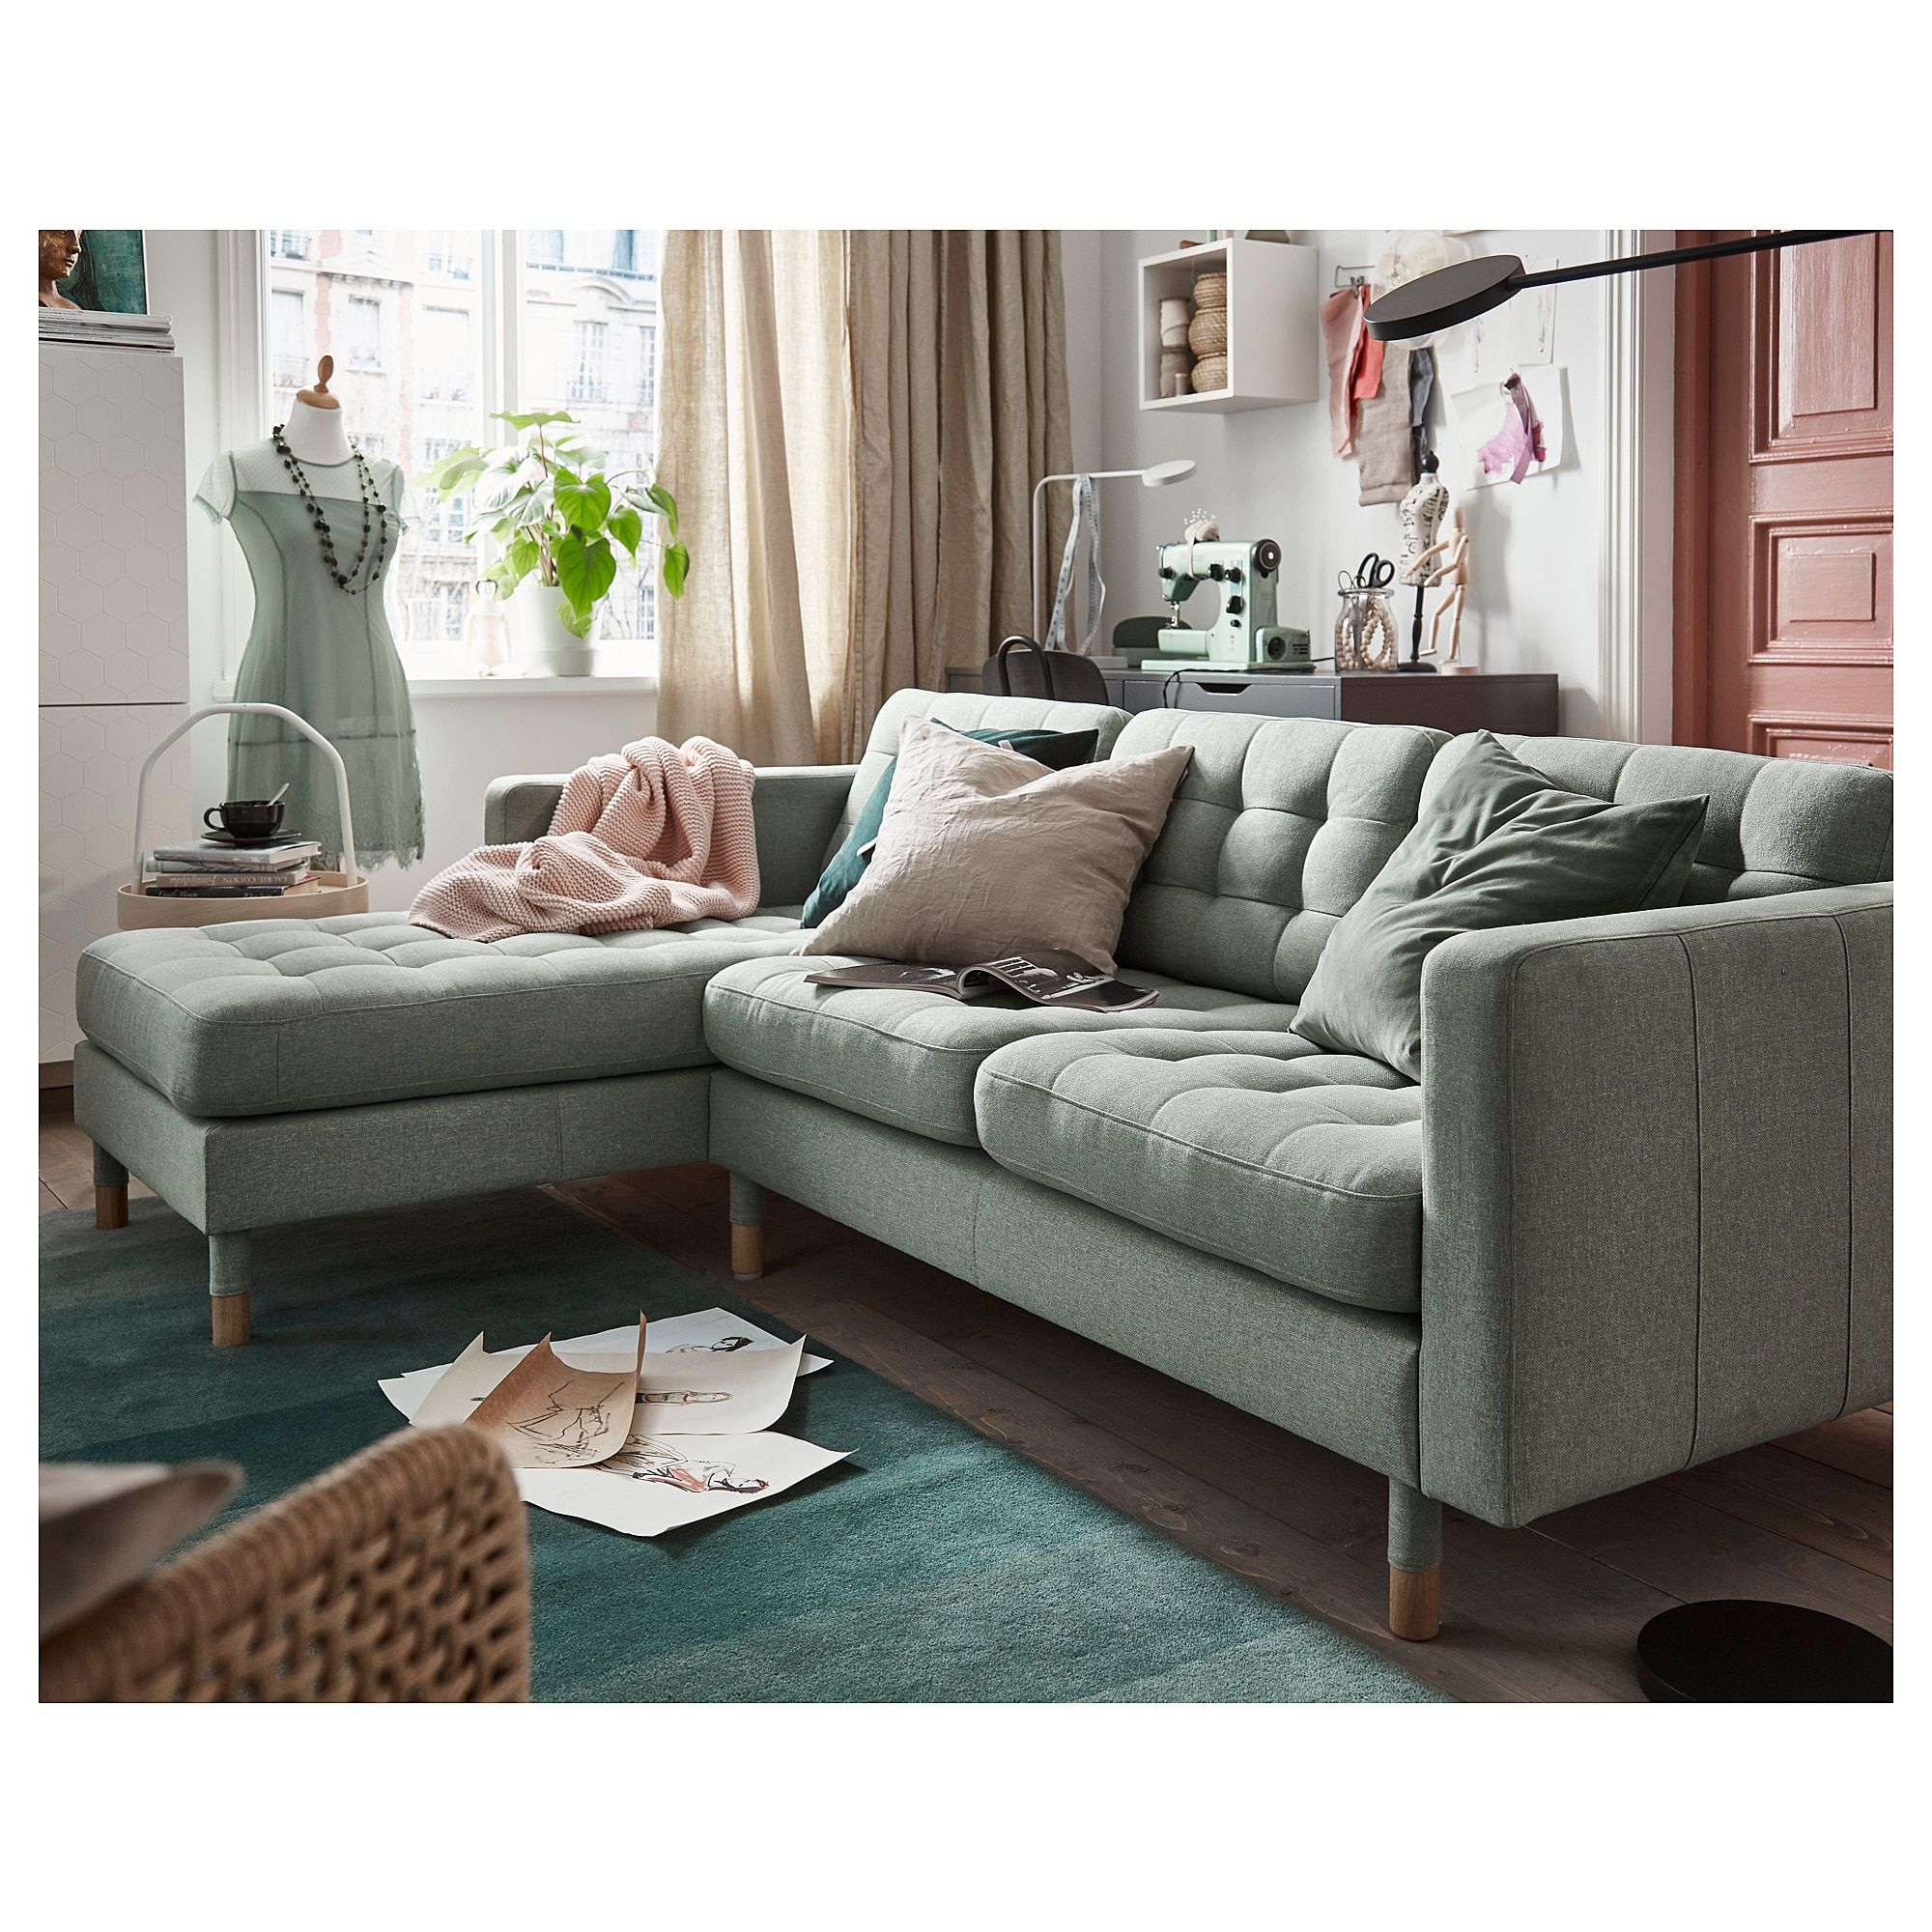 Furniture Home Furnishings Find Your Inspiration Green Sofa Living Room Green Couch Living Room Green Sofa